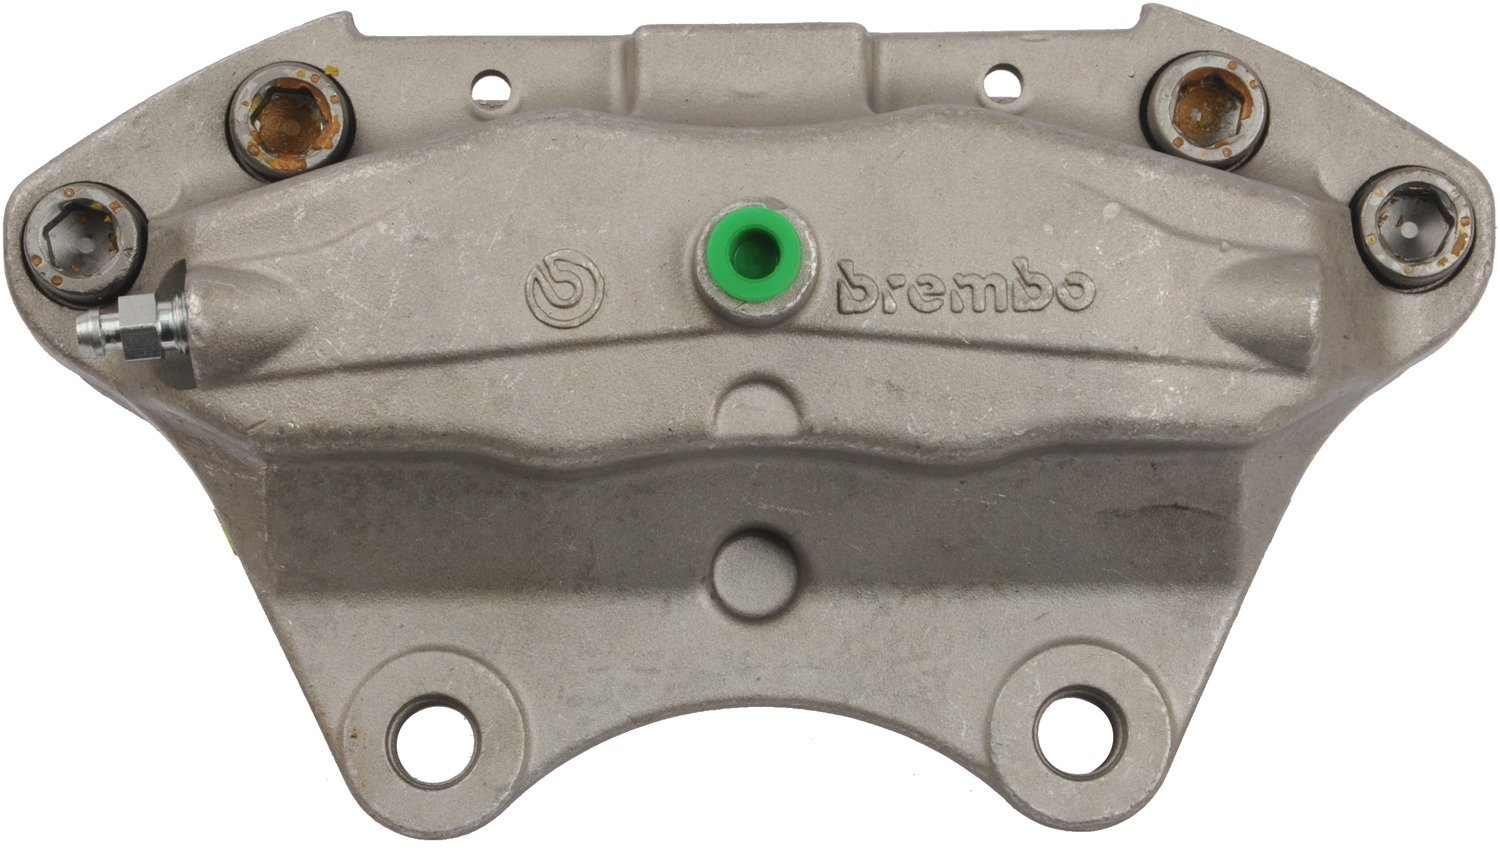 Unloaded A-1 Cardone 19-B2743 Remanufactured Import Friction Ready Brake Caliper